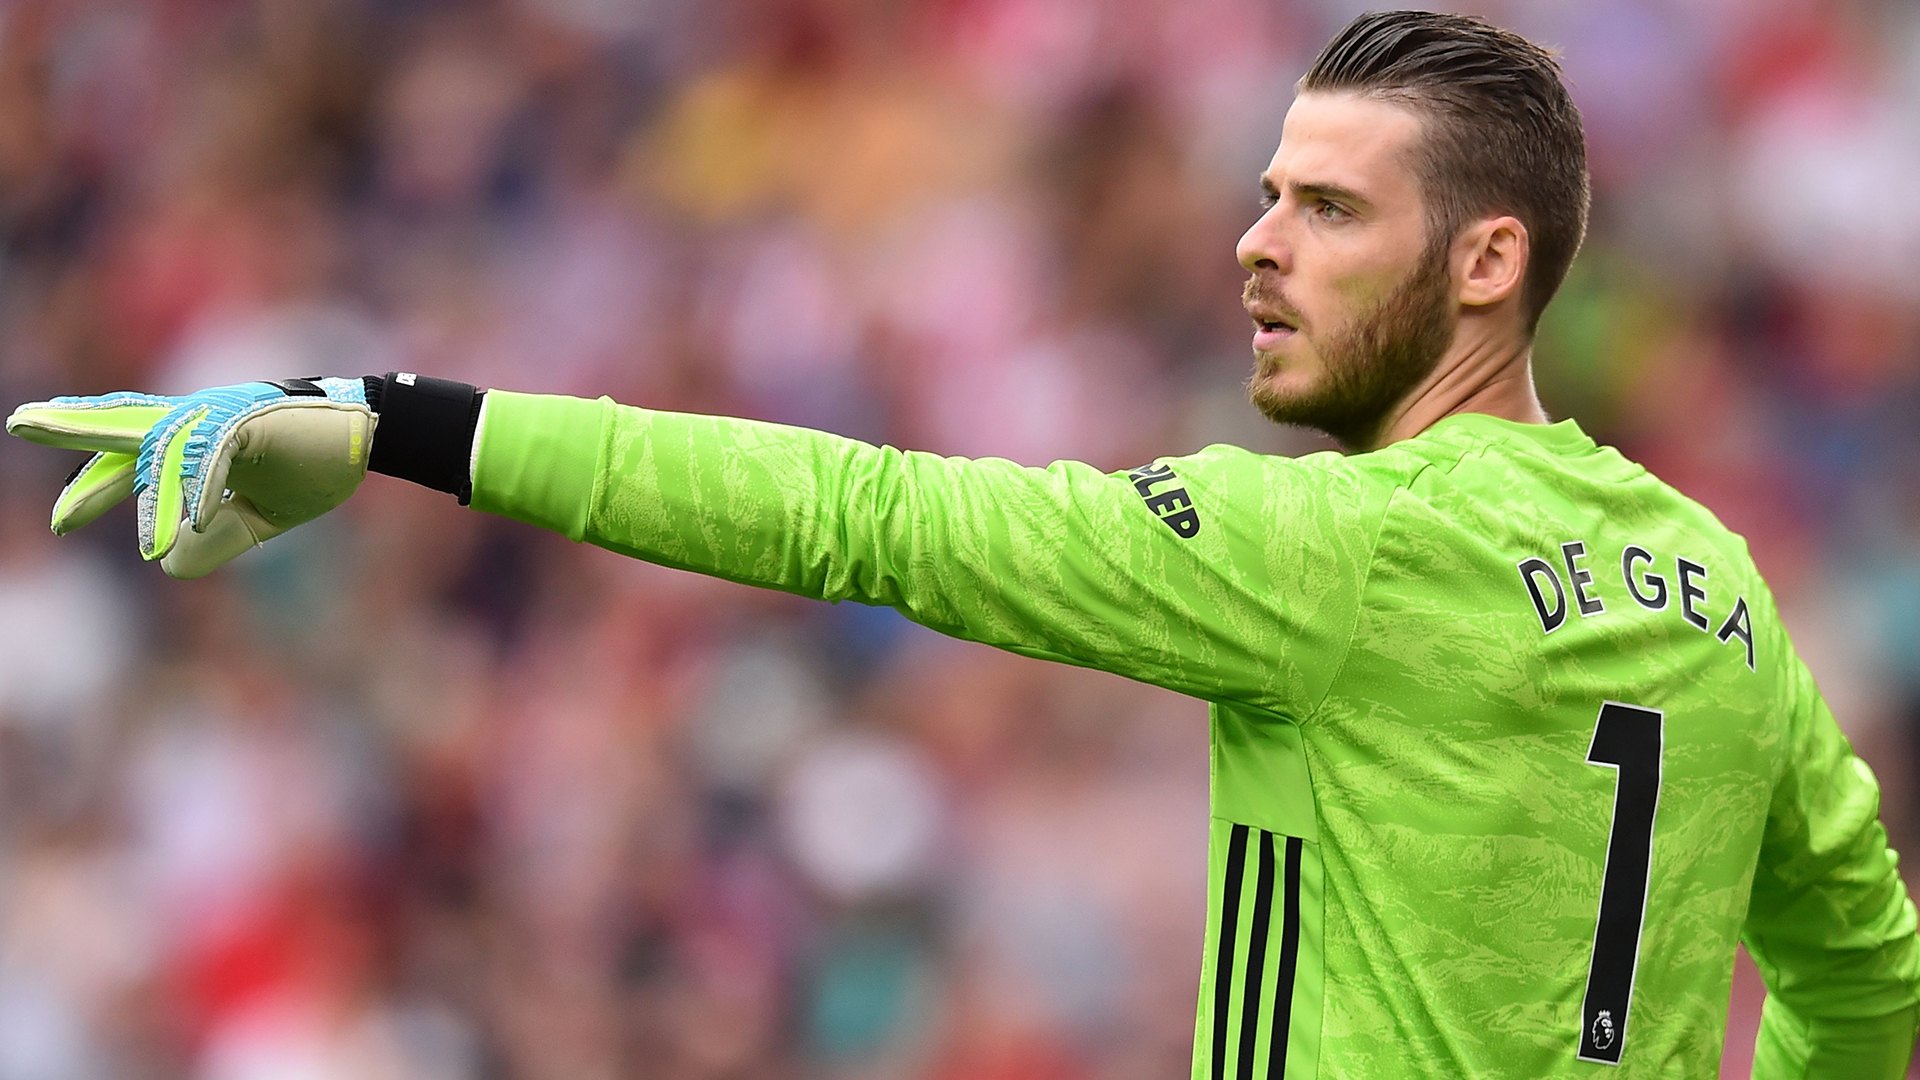 'We have to be more switched on' - De Gea fires warning to Man Utd stars ahead of West Ham clash